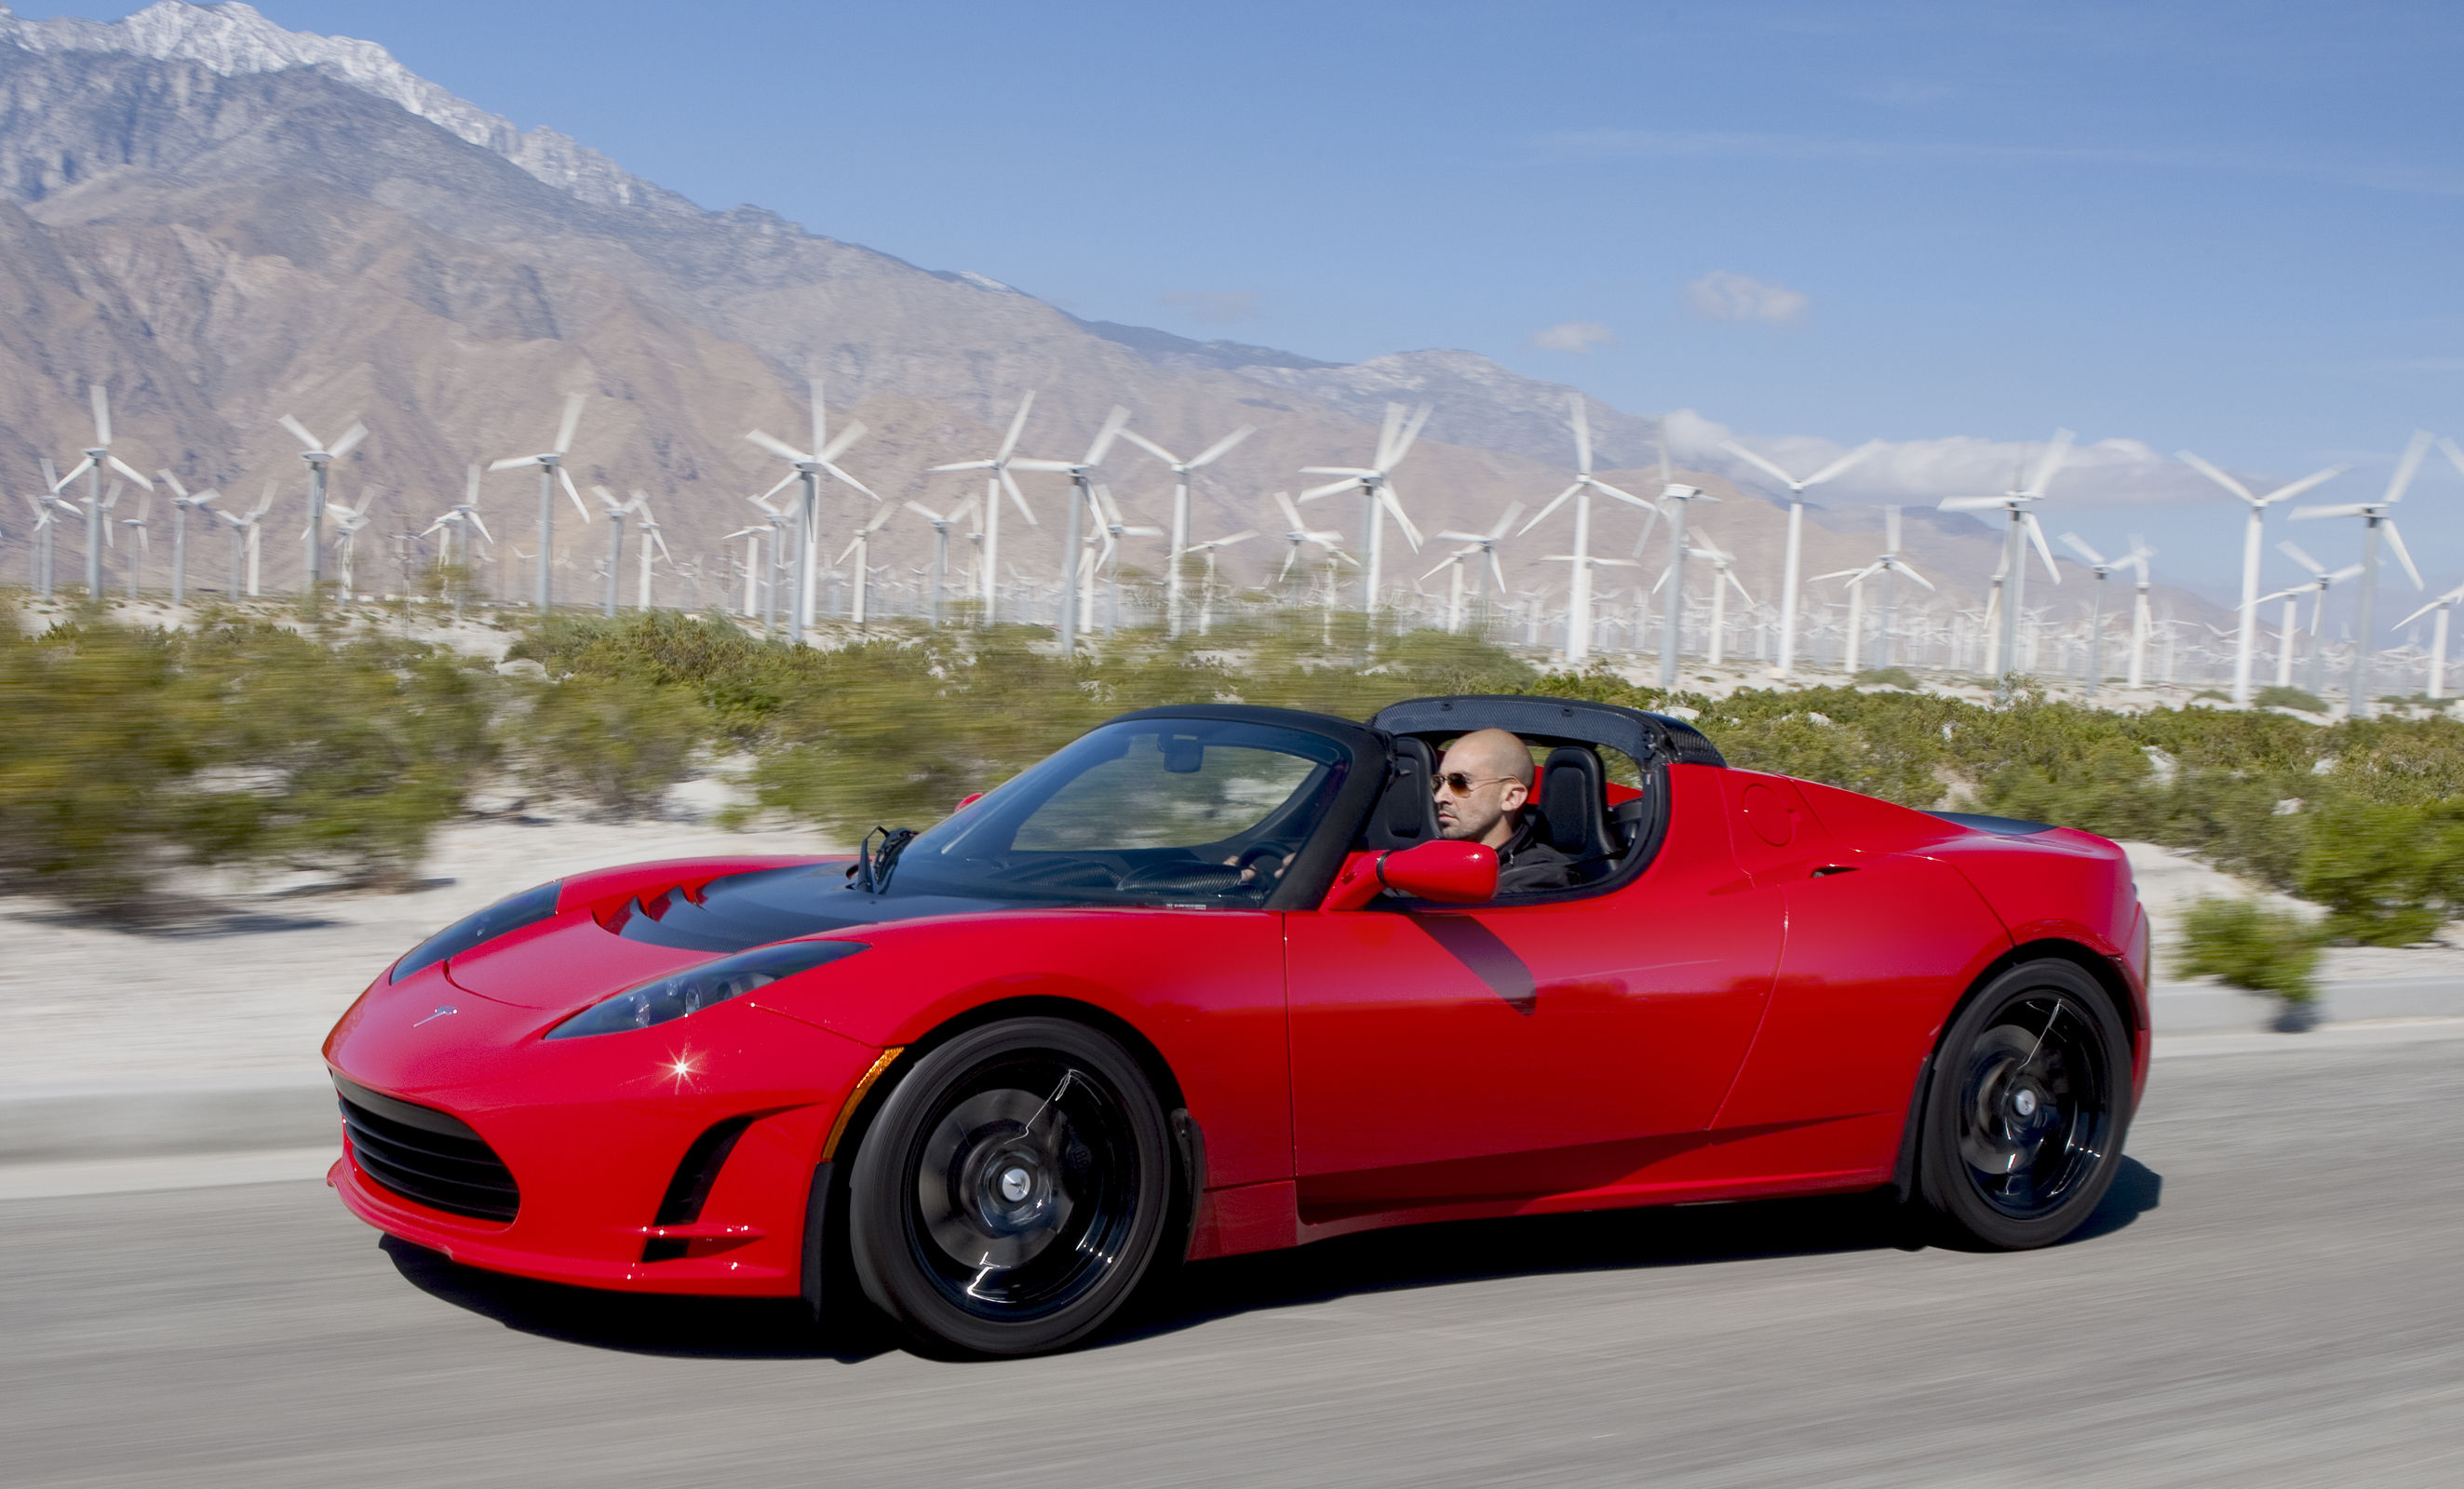 Tesla Roadster (2008) - Wikipedia